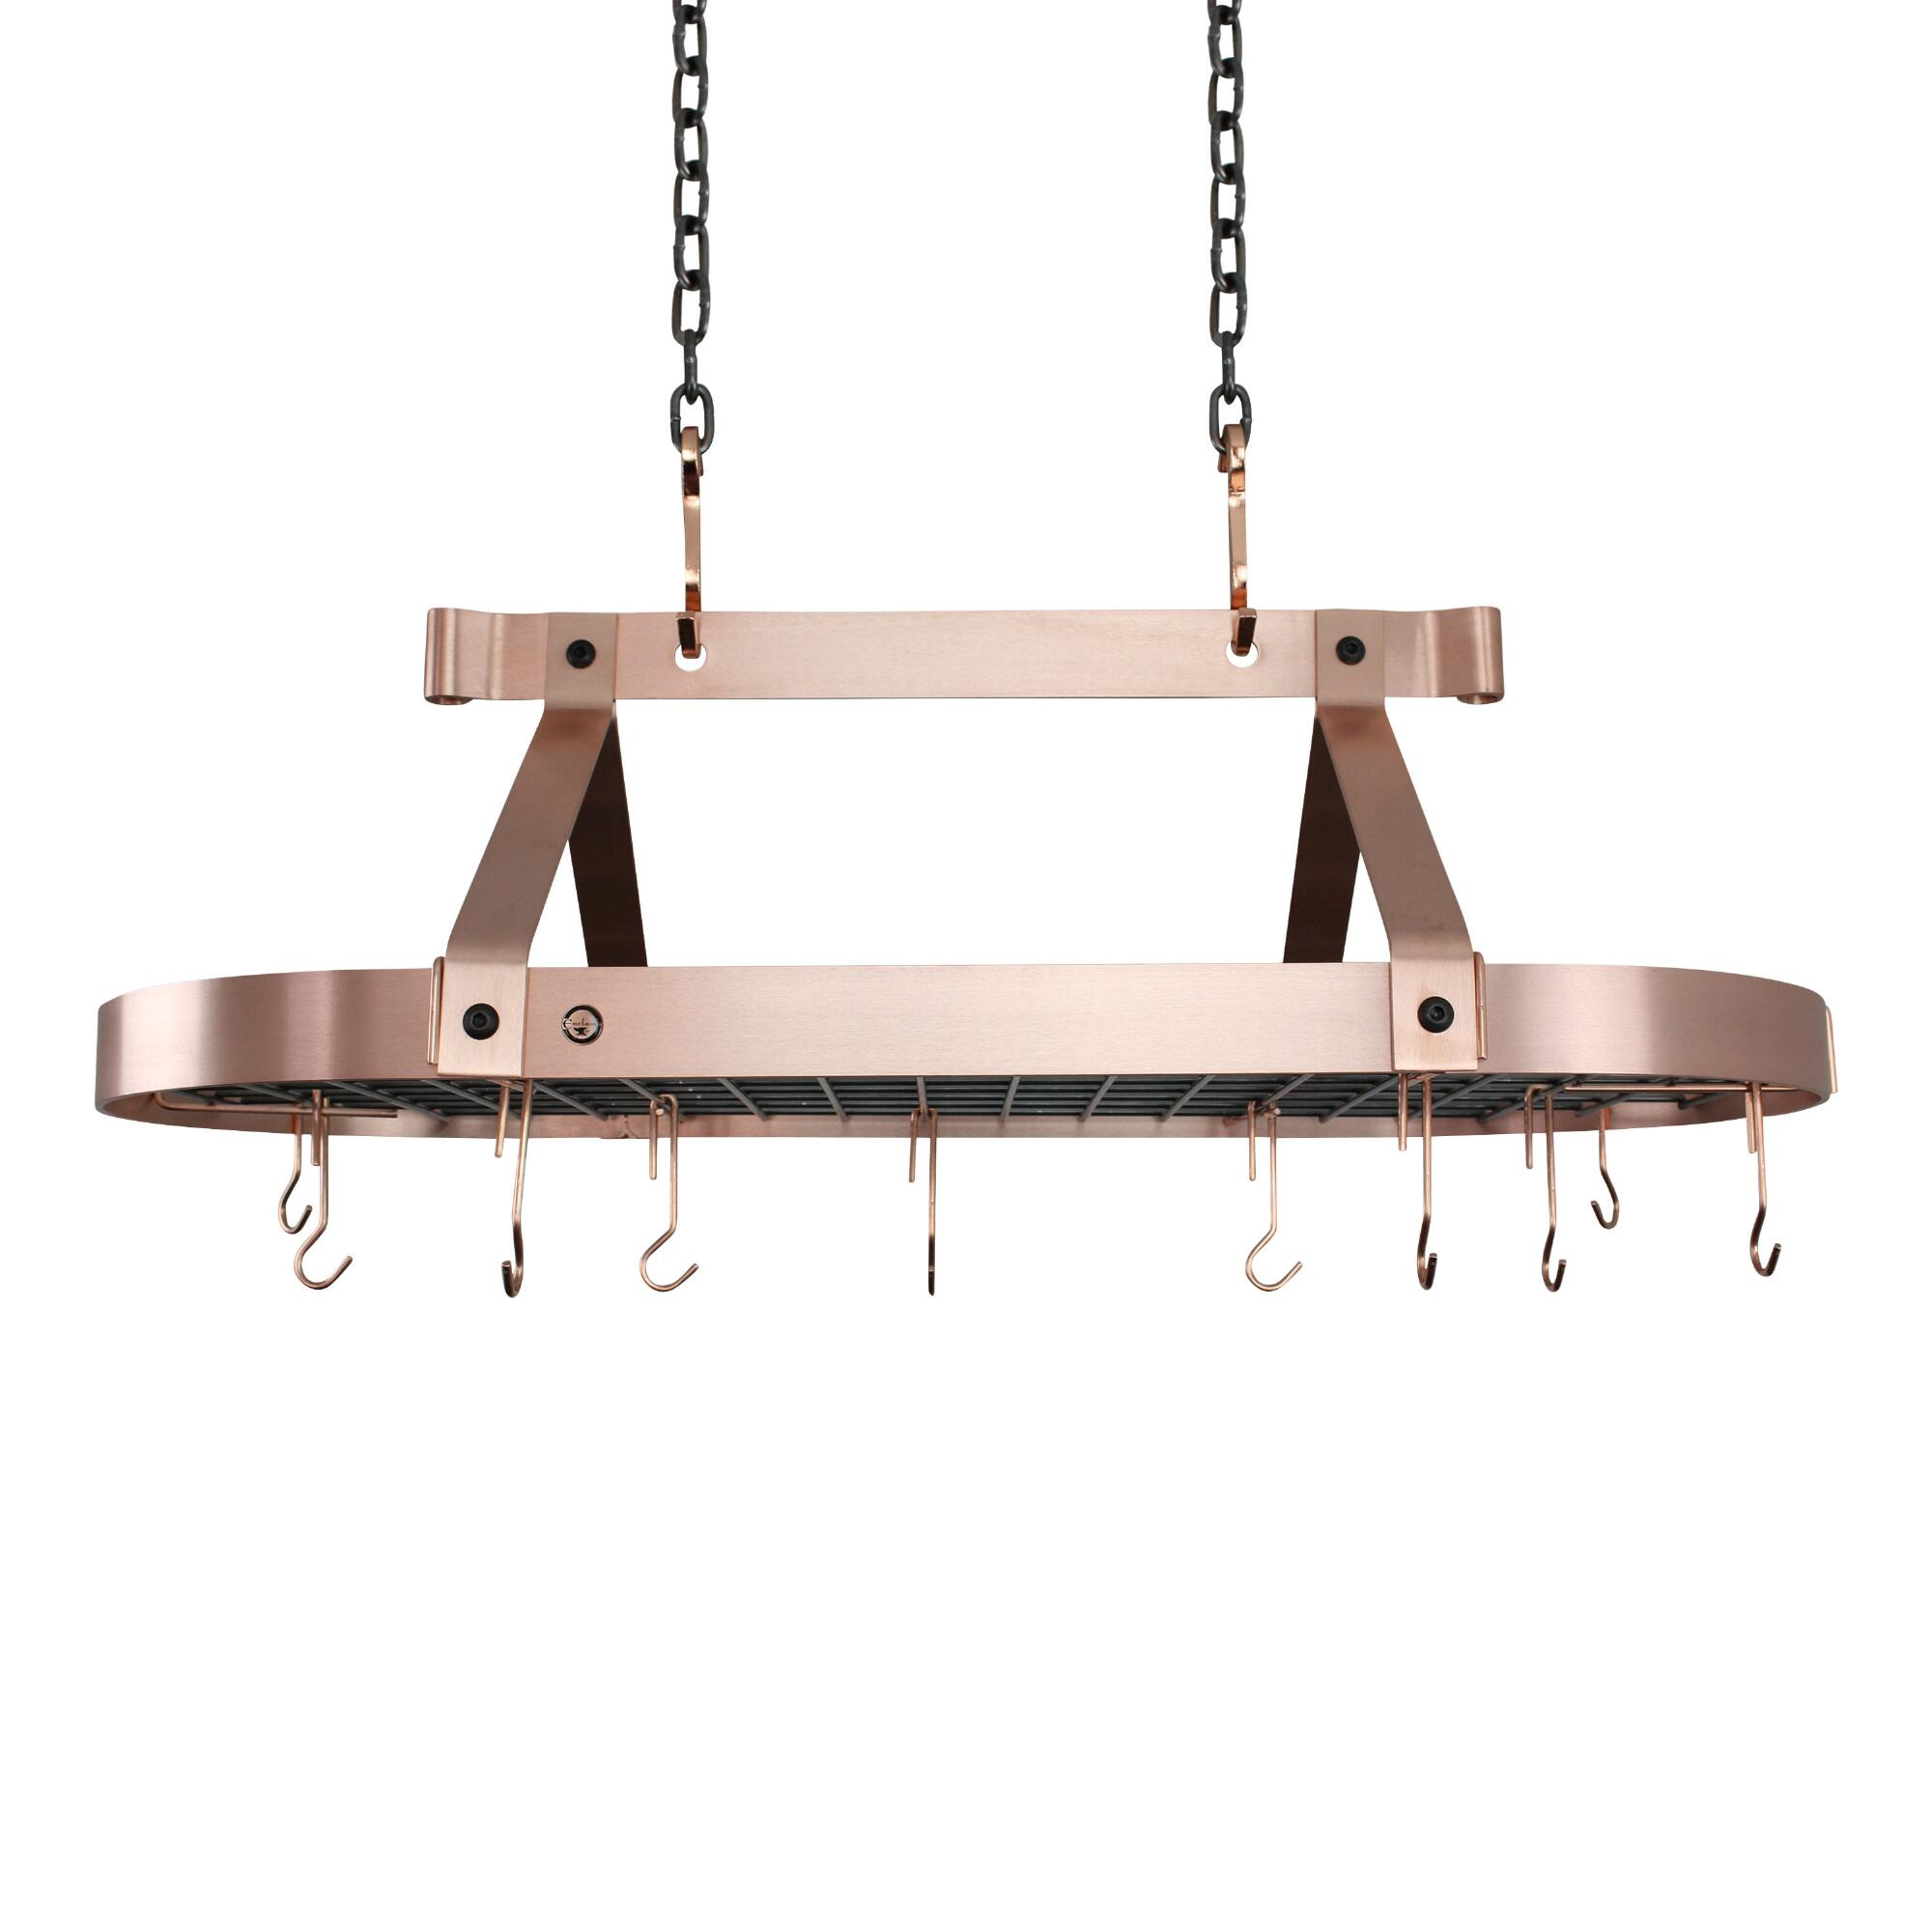 Enclume 3' Brushed Copper Ceiling Pot Rack by World Market